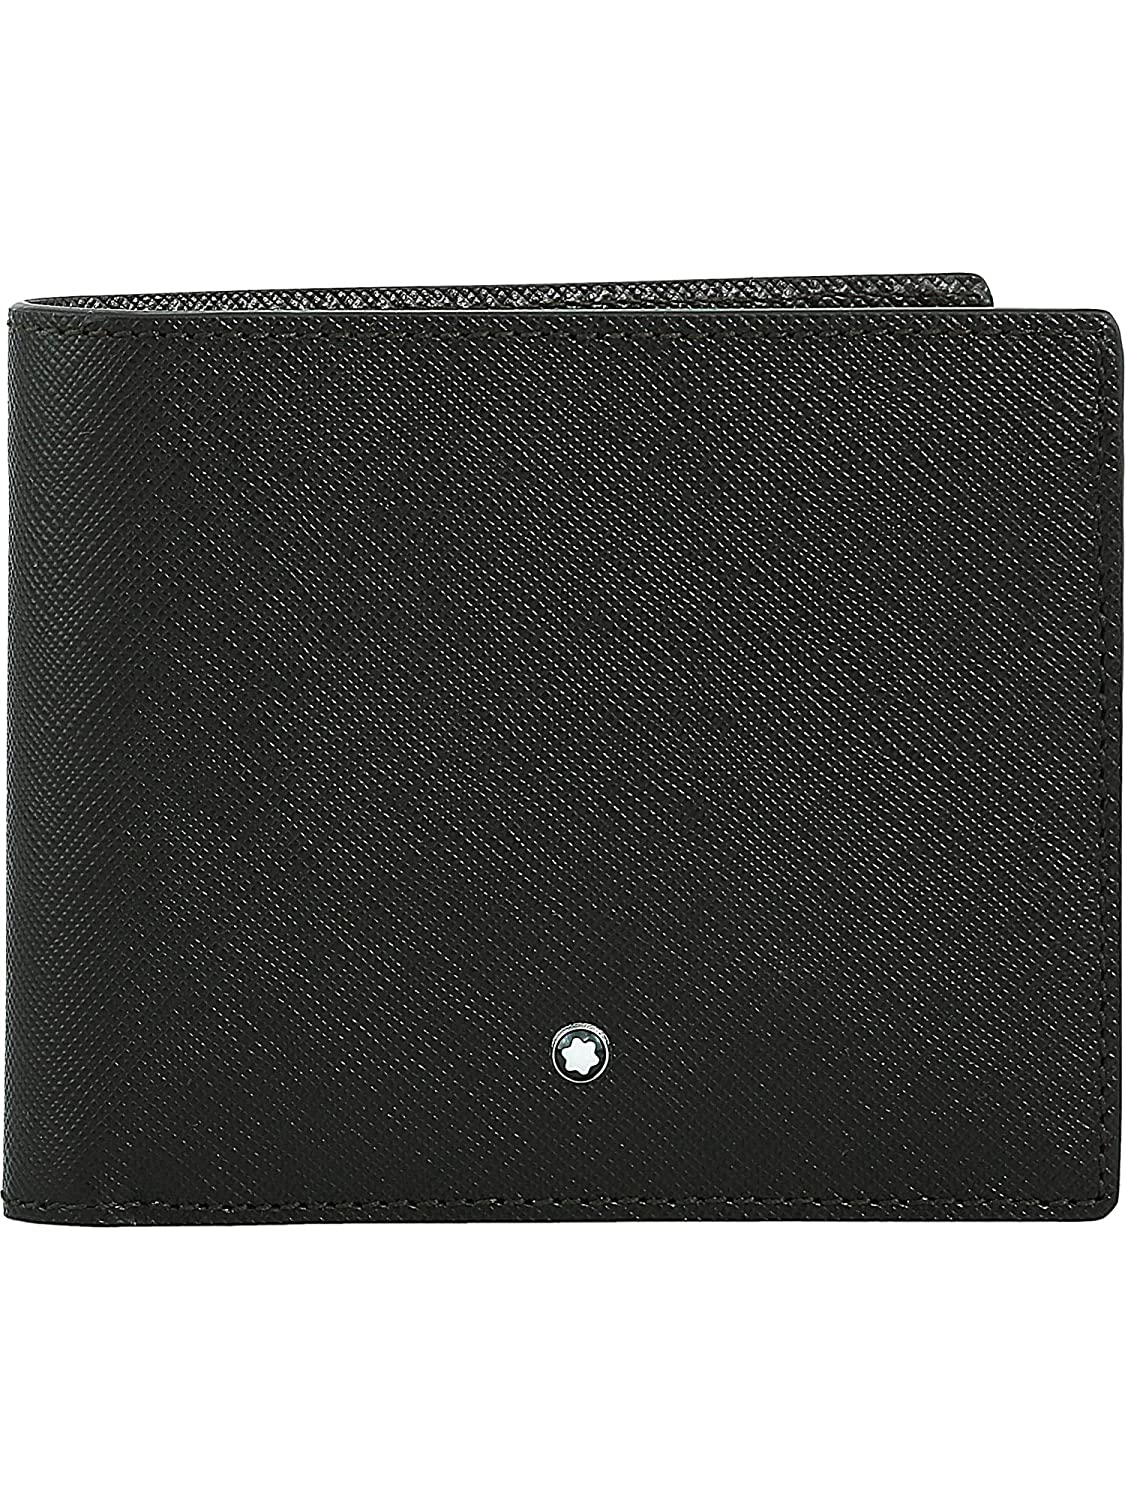 Montblanc 113221-montblanc-sartorial-wallet-4cc-with-money-clip   Amazon.co.uk  Luggage e3a9591657